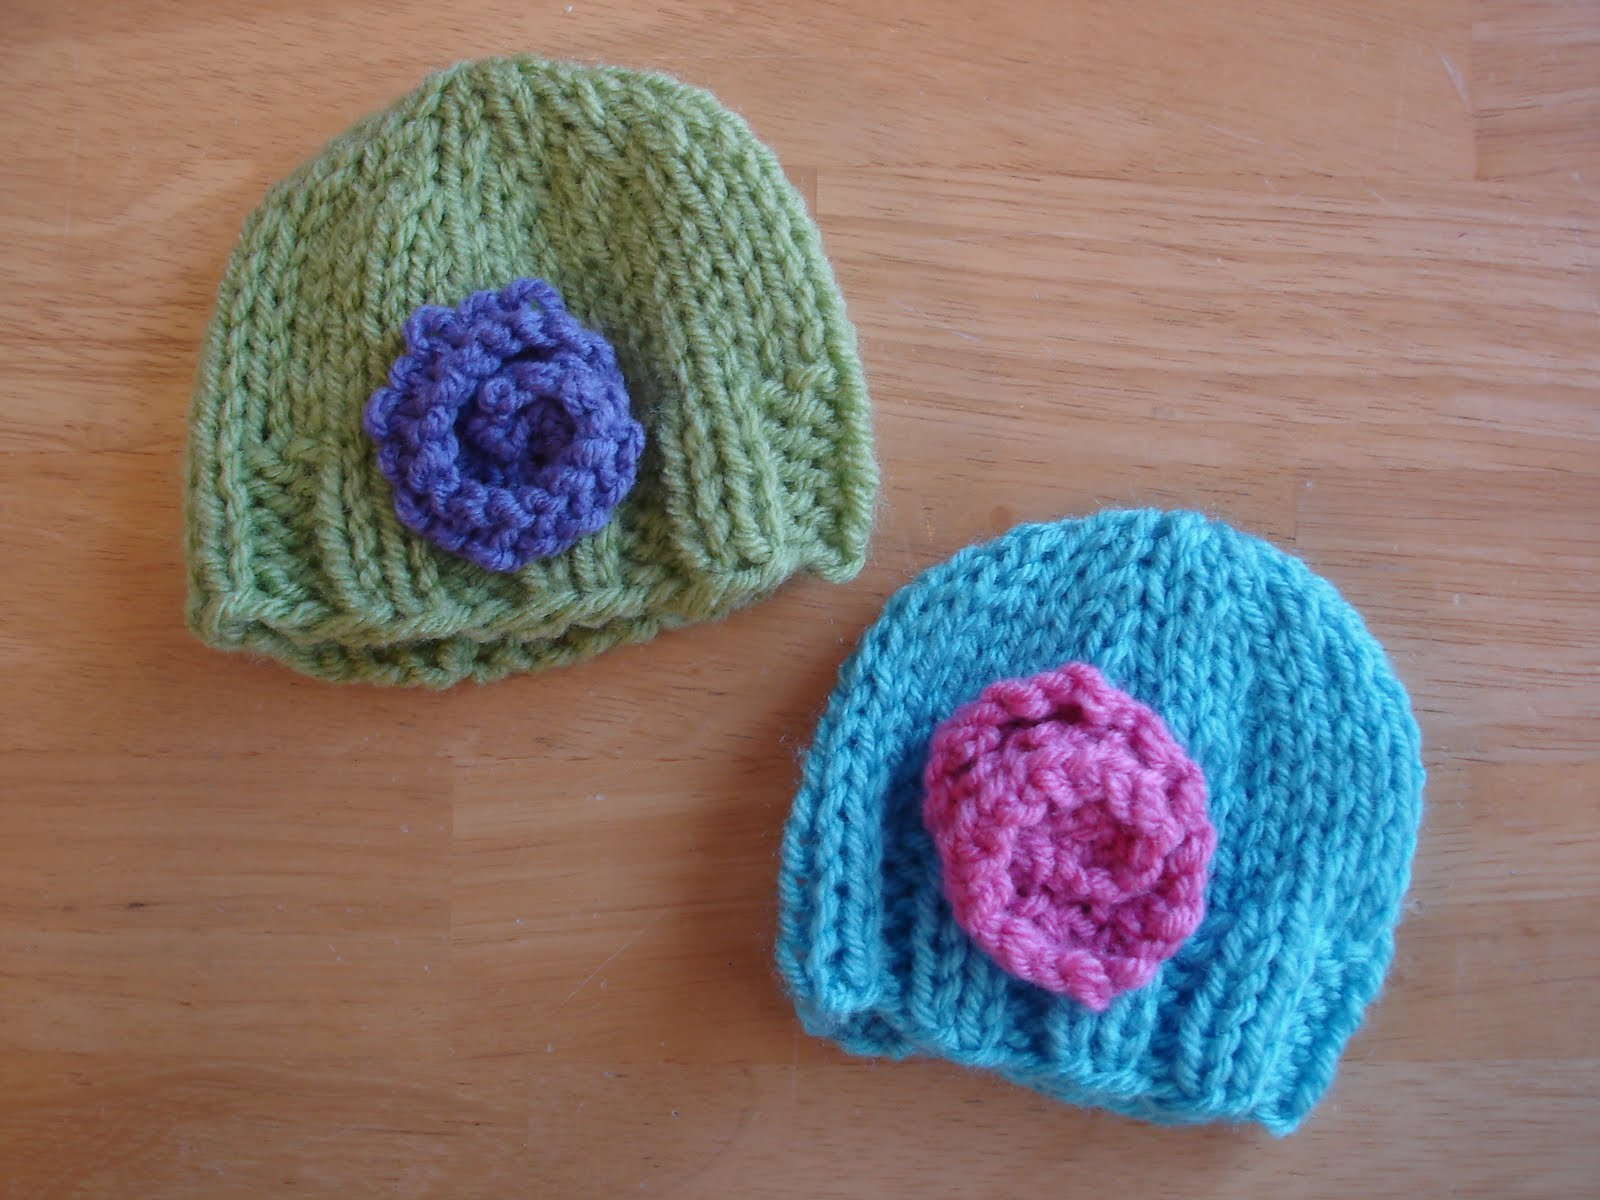 Free Baby Hats Knitting Patterns : Fiber Flux: Free Knitting Pattern...Baby Doll Hats!